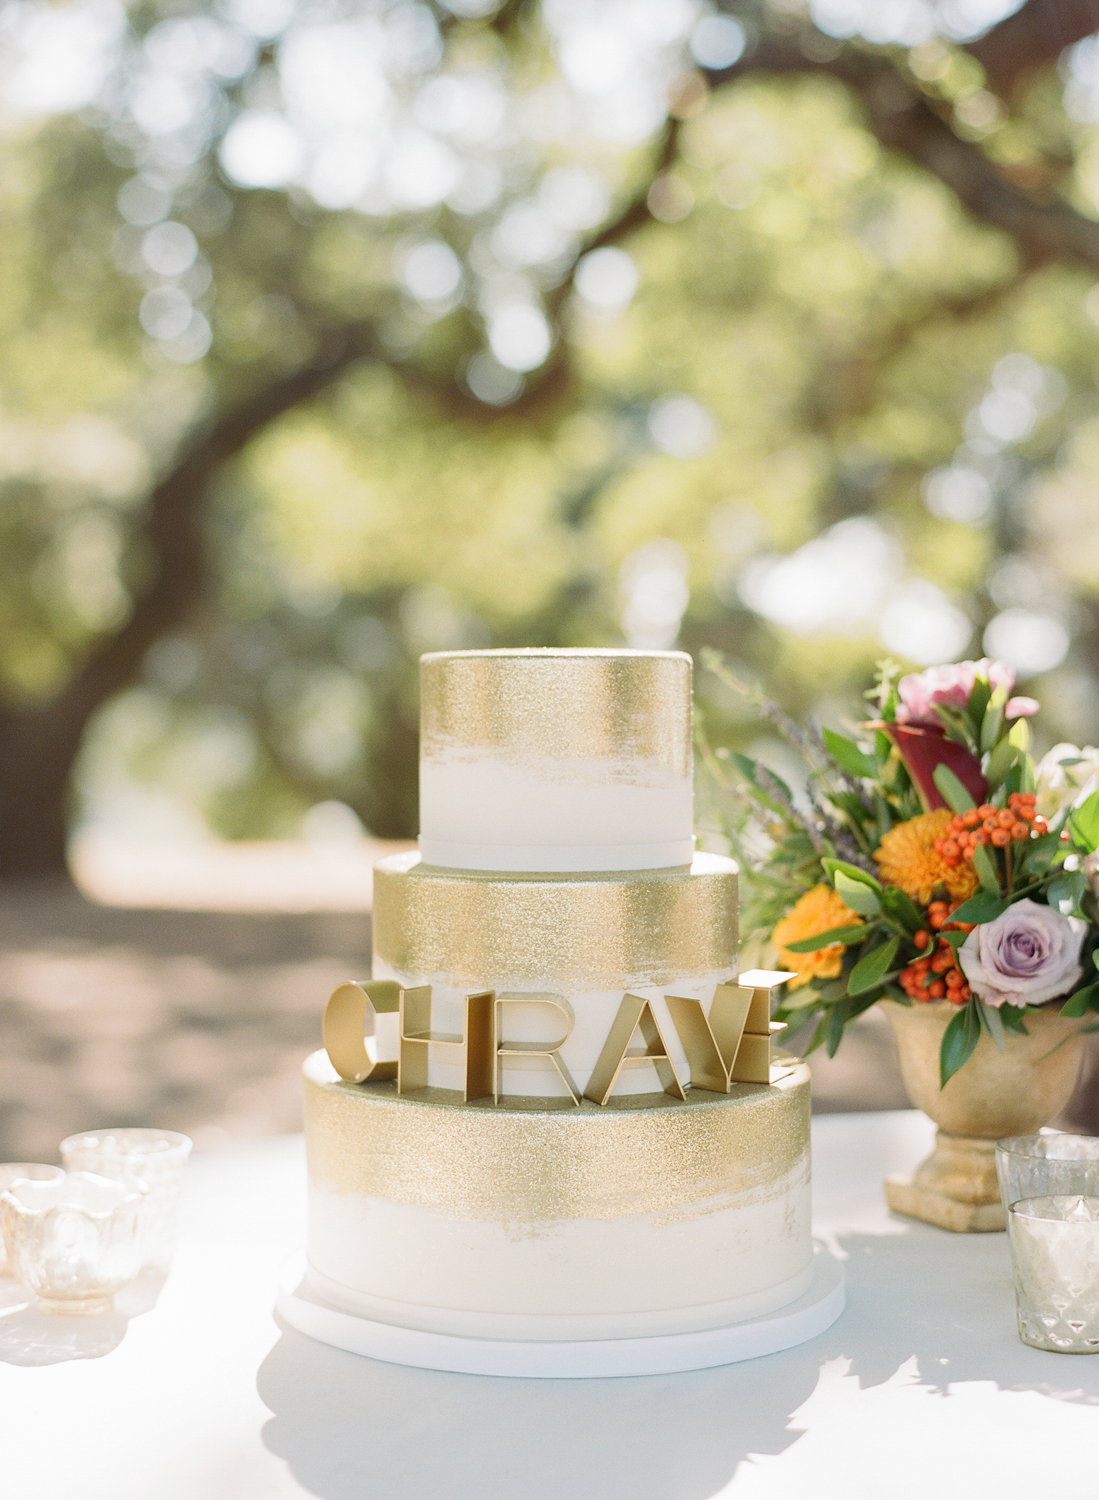 """A three-tier, gold-trimmed wedding cake with the grooms' couple name, """"CHRAVE""""; Sylvie Gil Photography"""